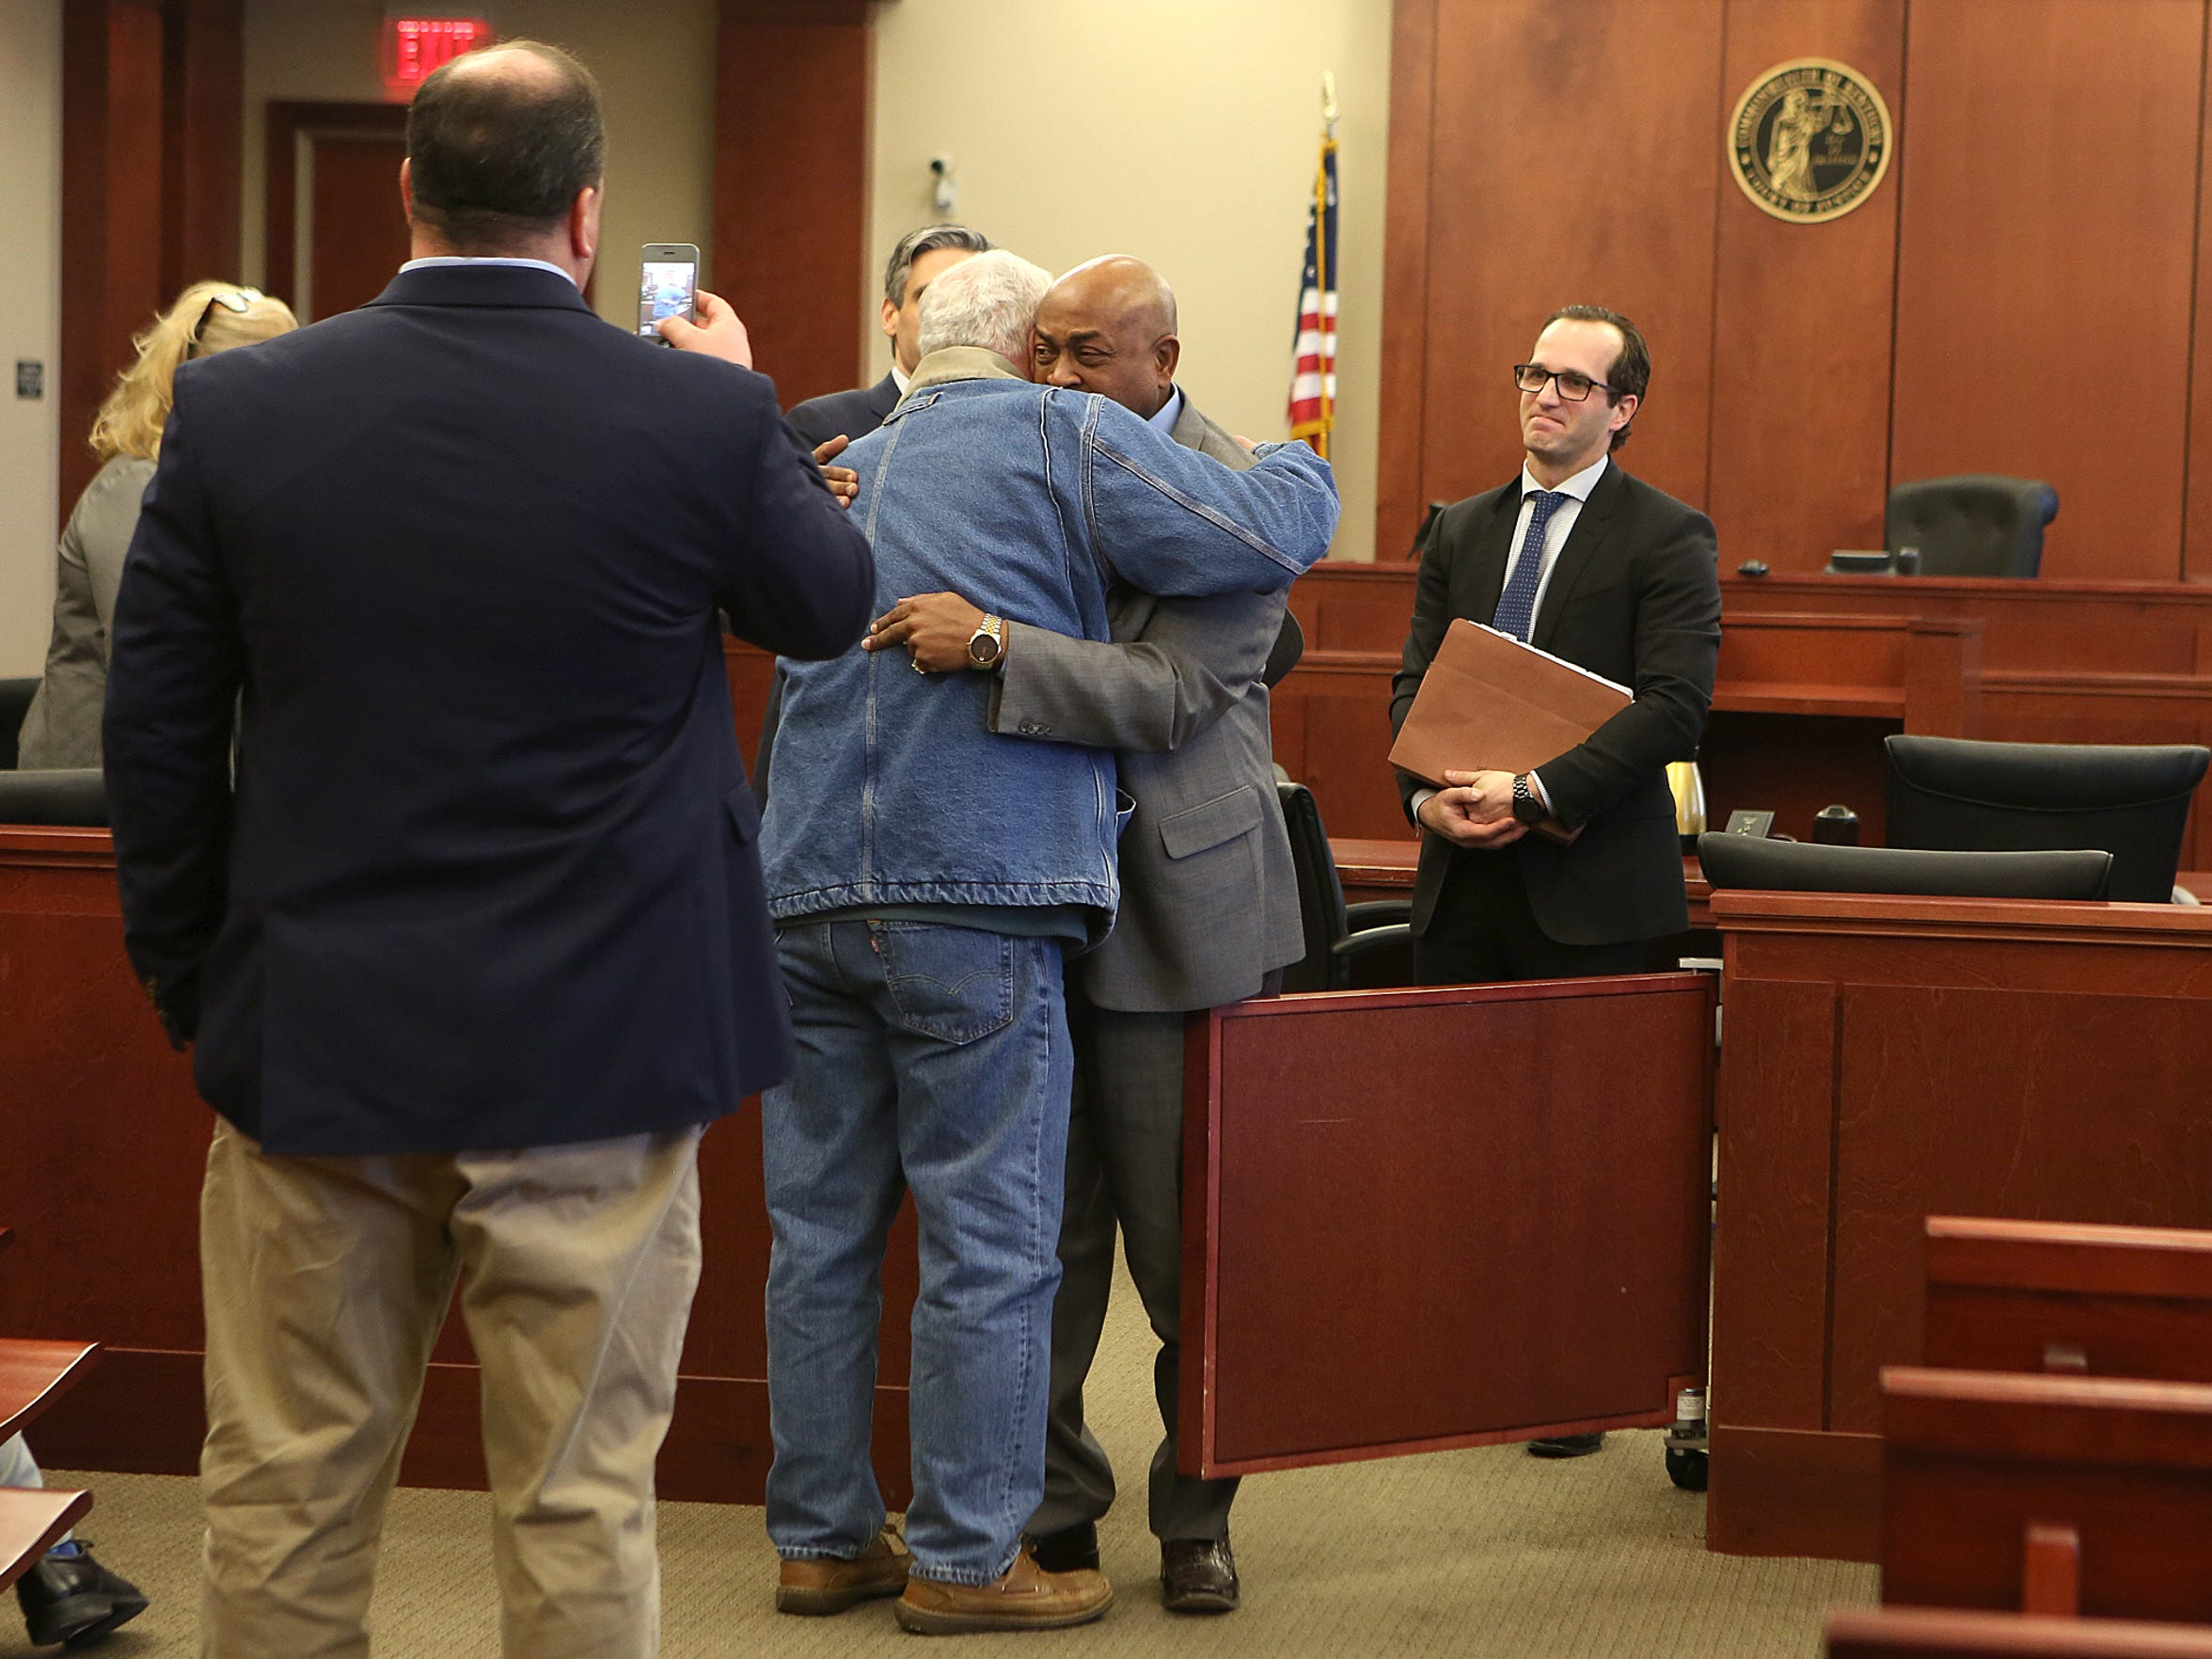 William Virgil, center, hugs a friend after learning that charges were being dismissed against him in the Retha Welch murder case. Welch was killed in April 1987. Virgil, convicted in 1988 for the crime, served 28 years before DNA testing overturned his conviction. The Enquirer/Amanda Rossmann